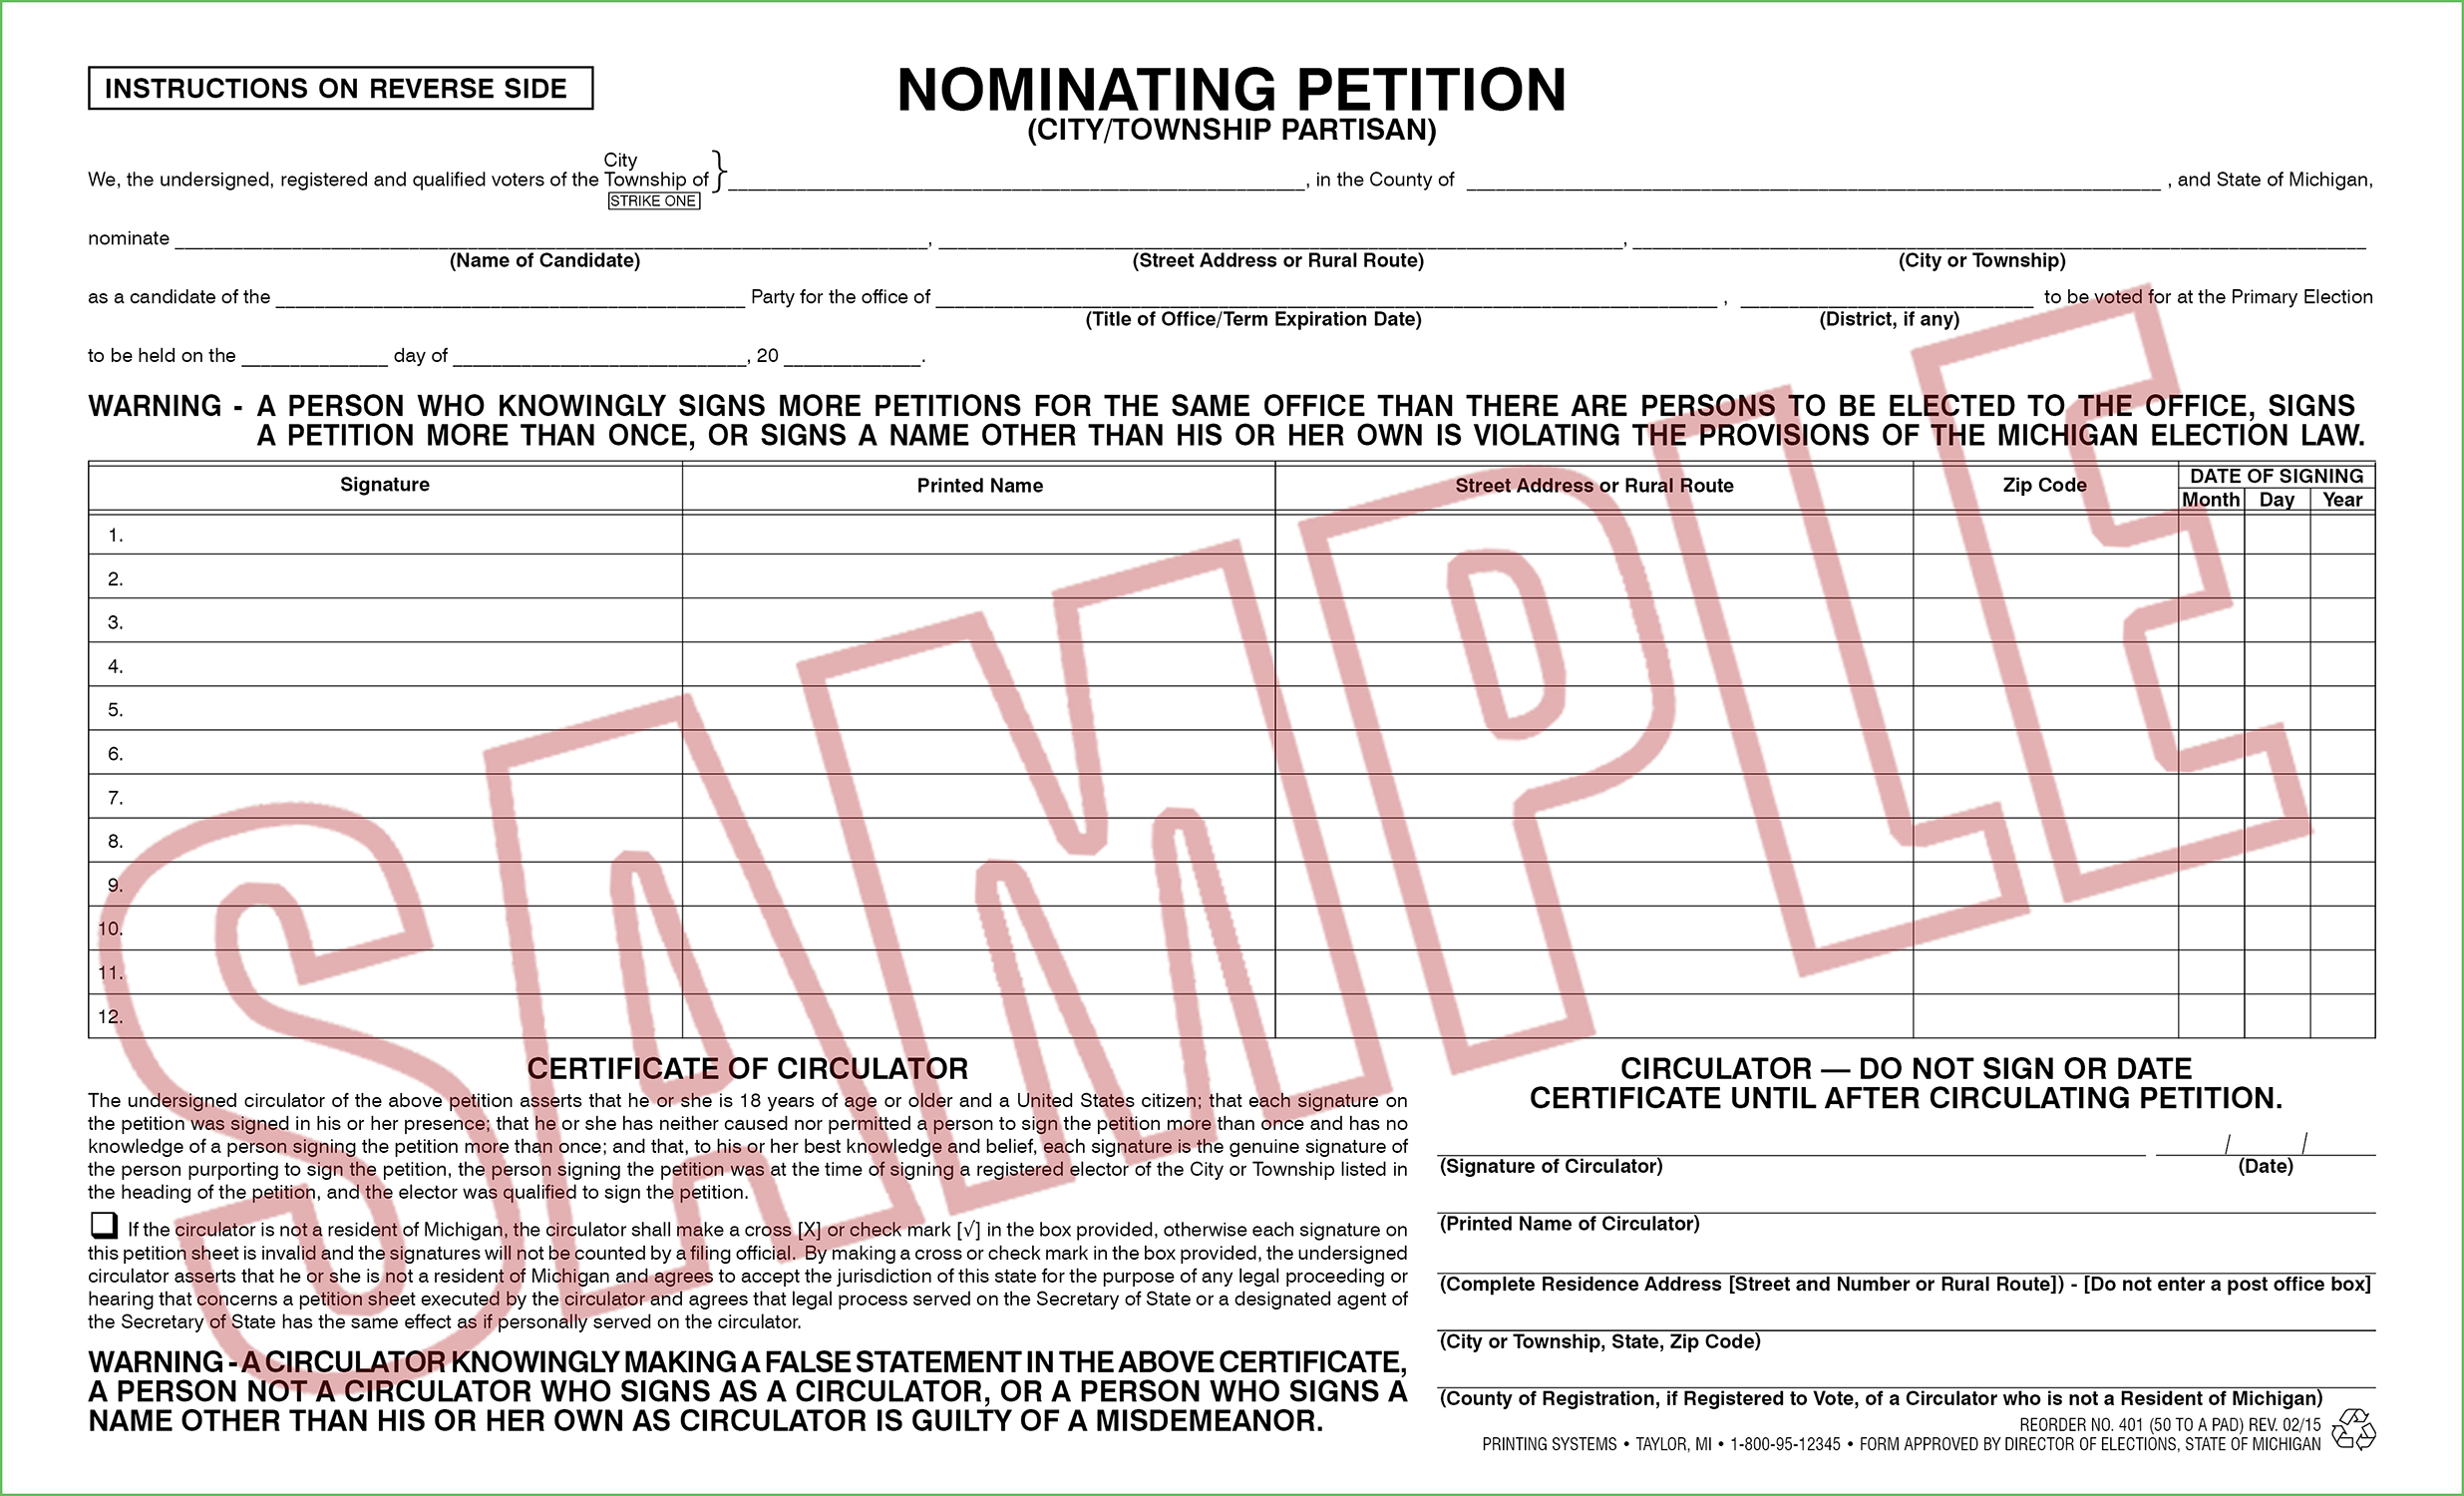 401 Nominating Petition (Ci/Twp) Partisan (50 per pad) Rev. 02/15